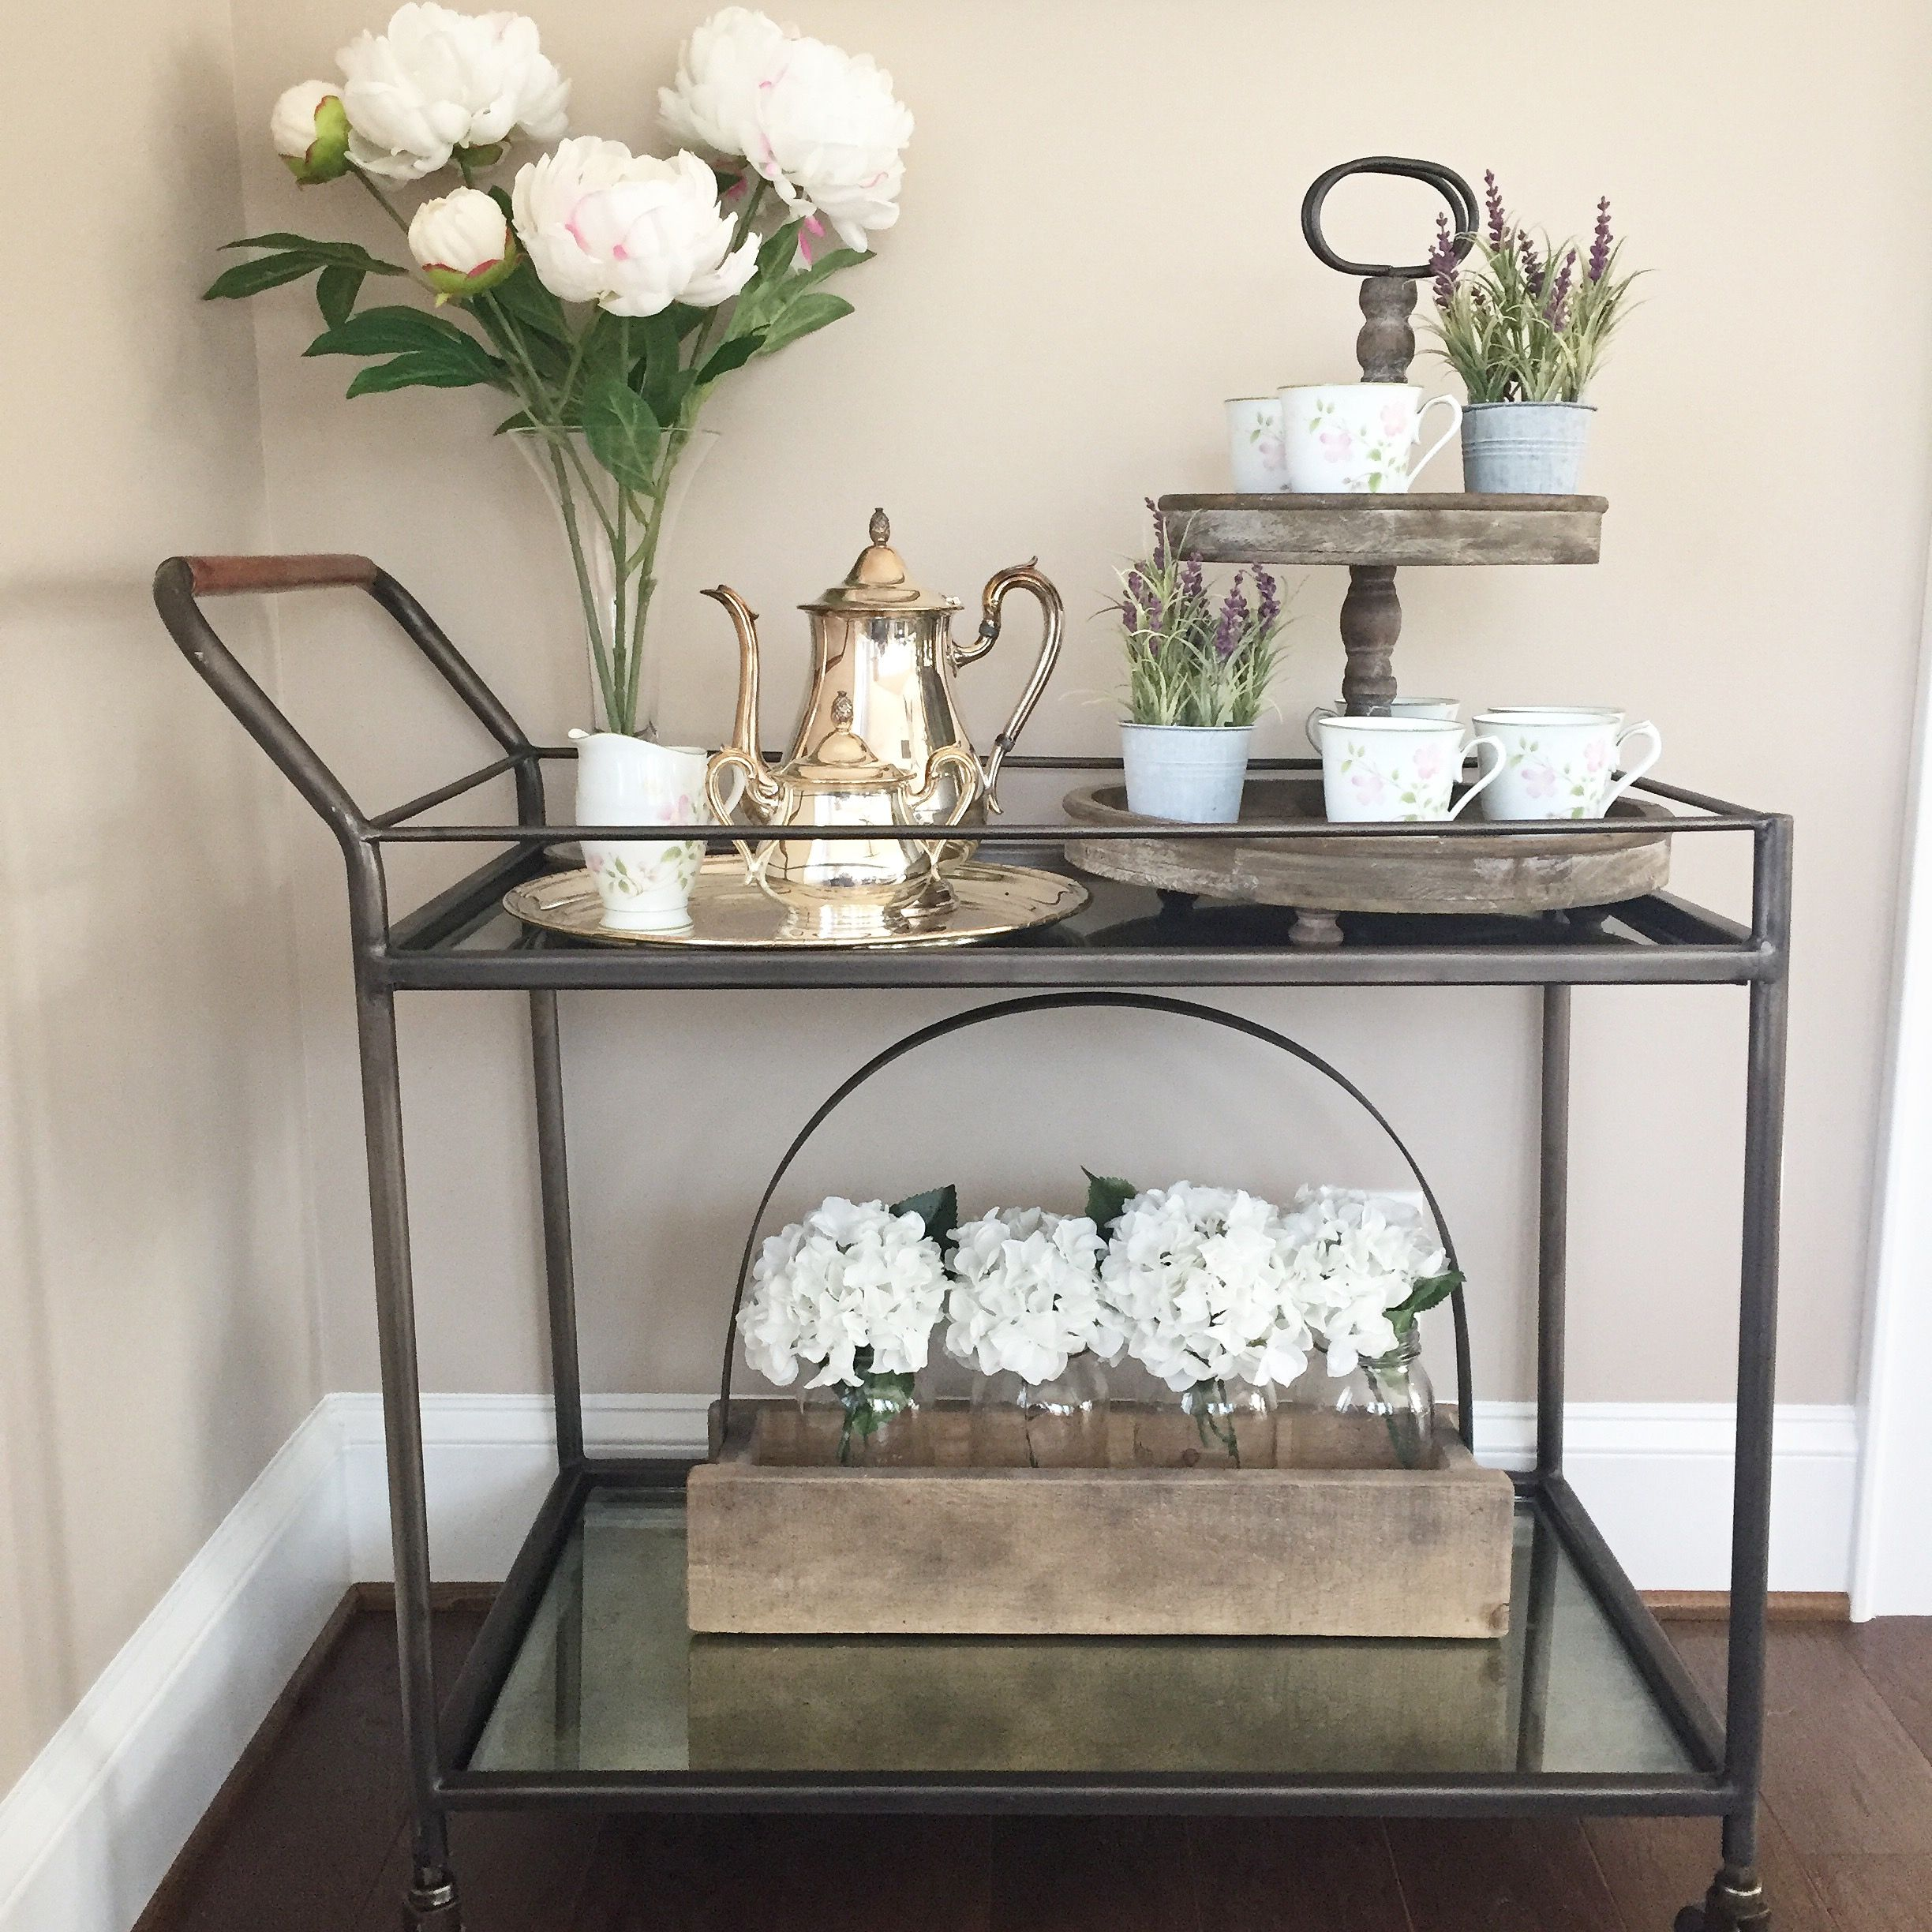 Top Trending Coffee Station Ideas | Hadley Court ...